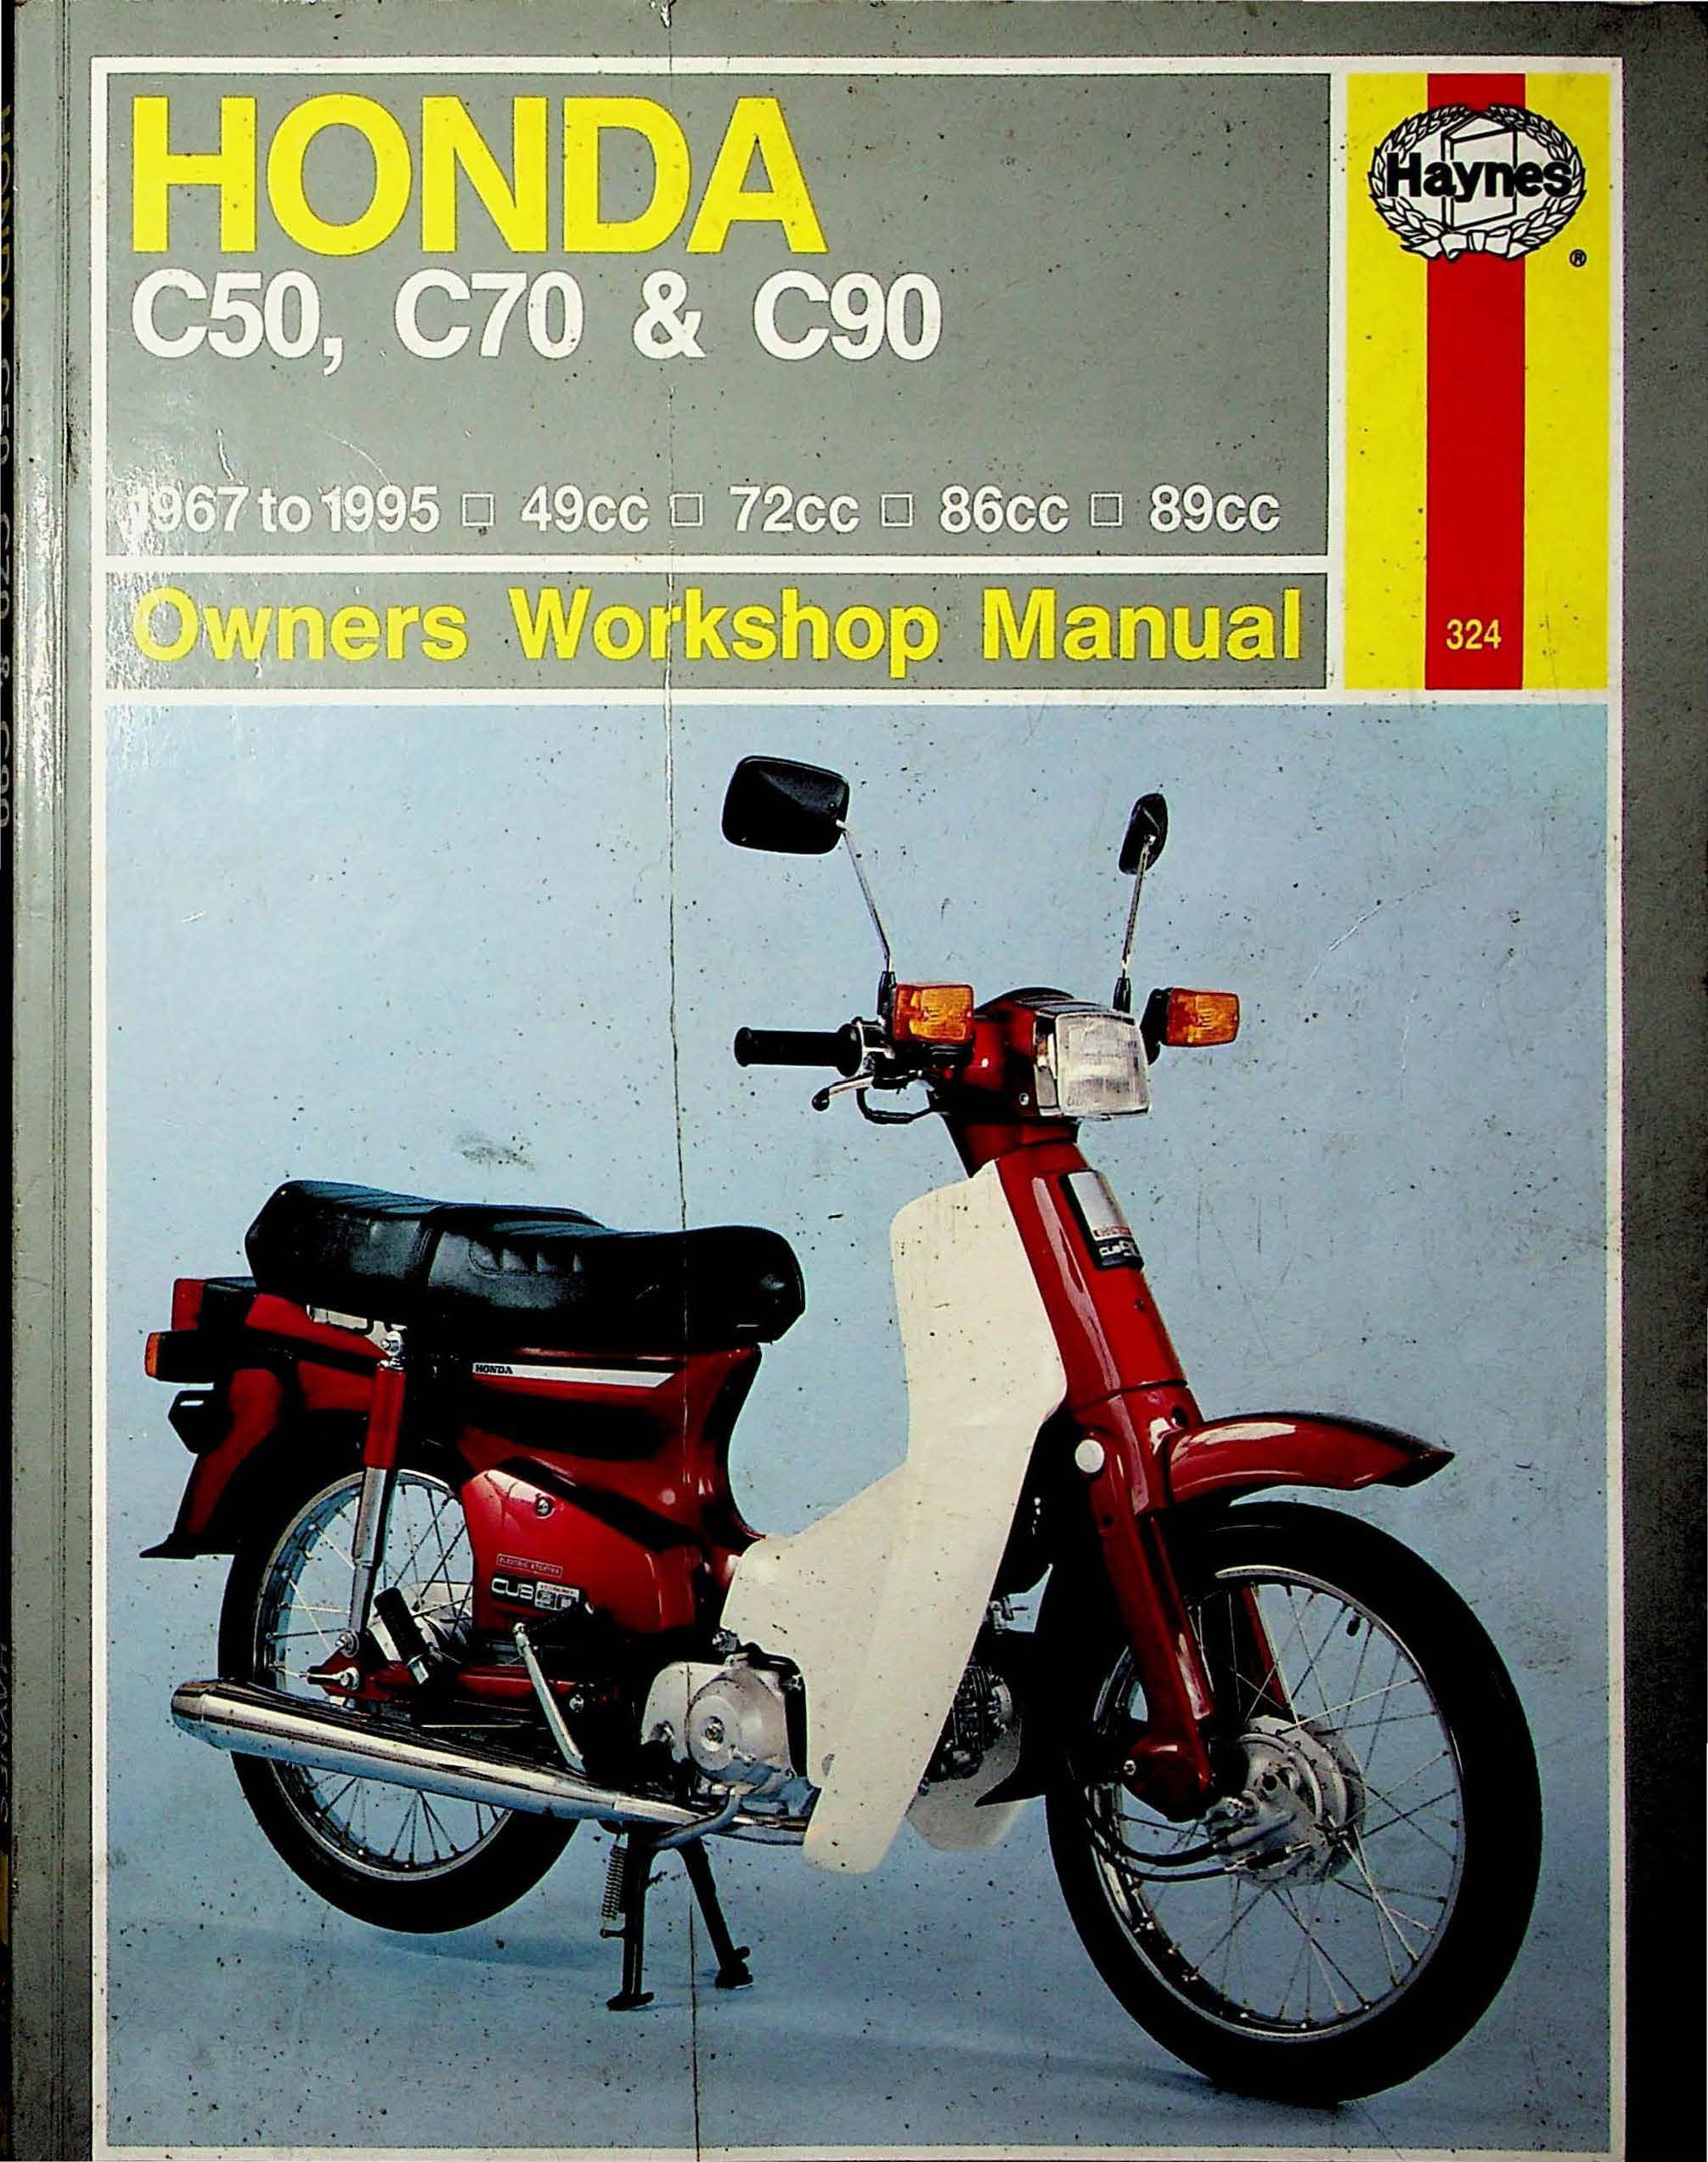 Workshop manual for Honda C50 (1967-1995)